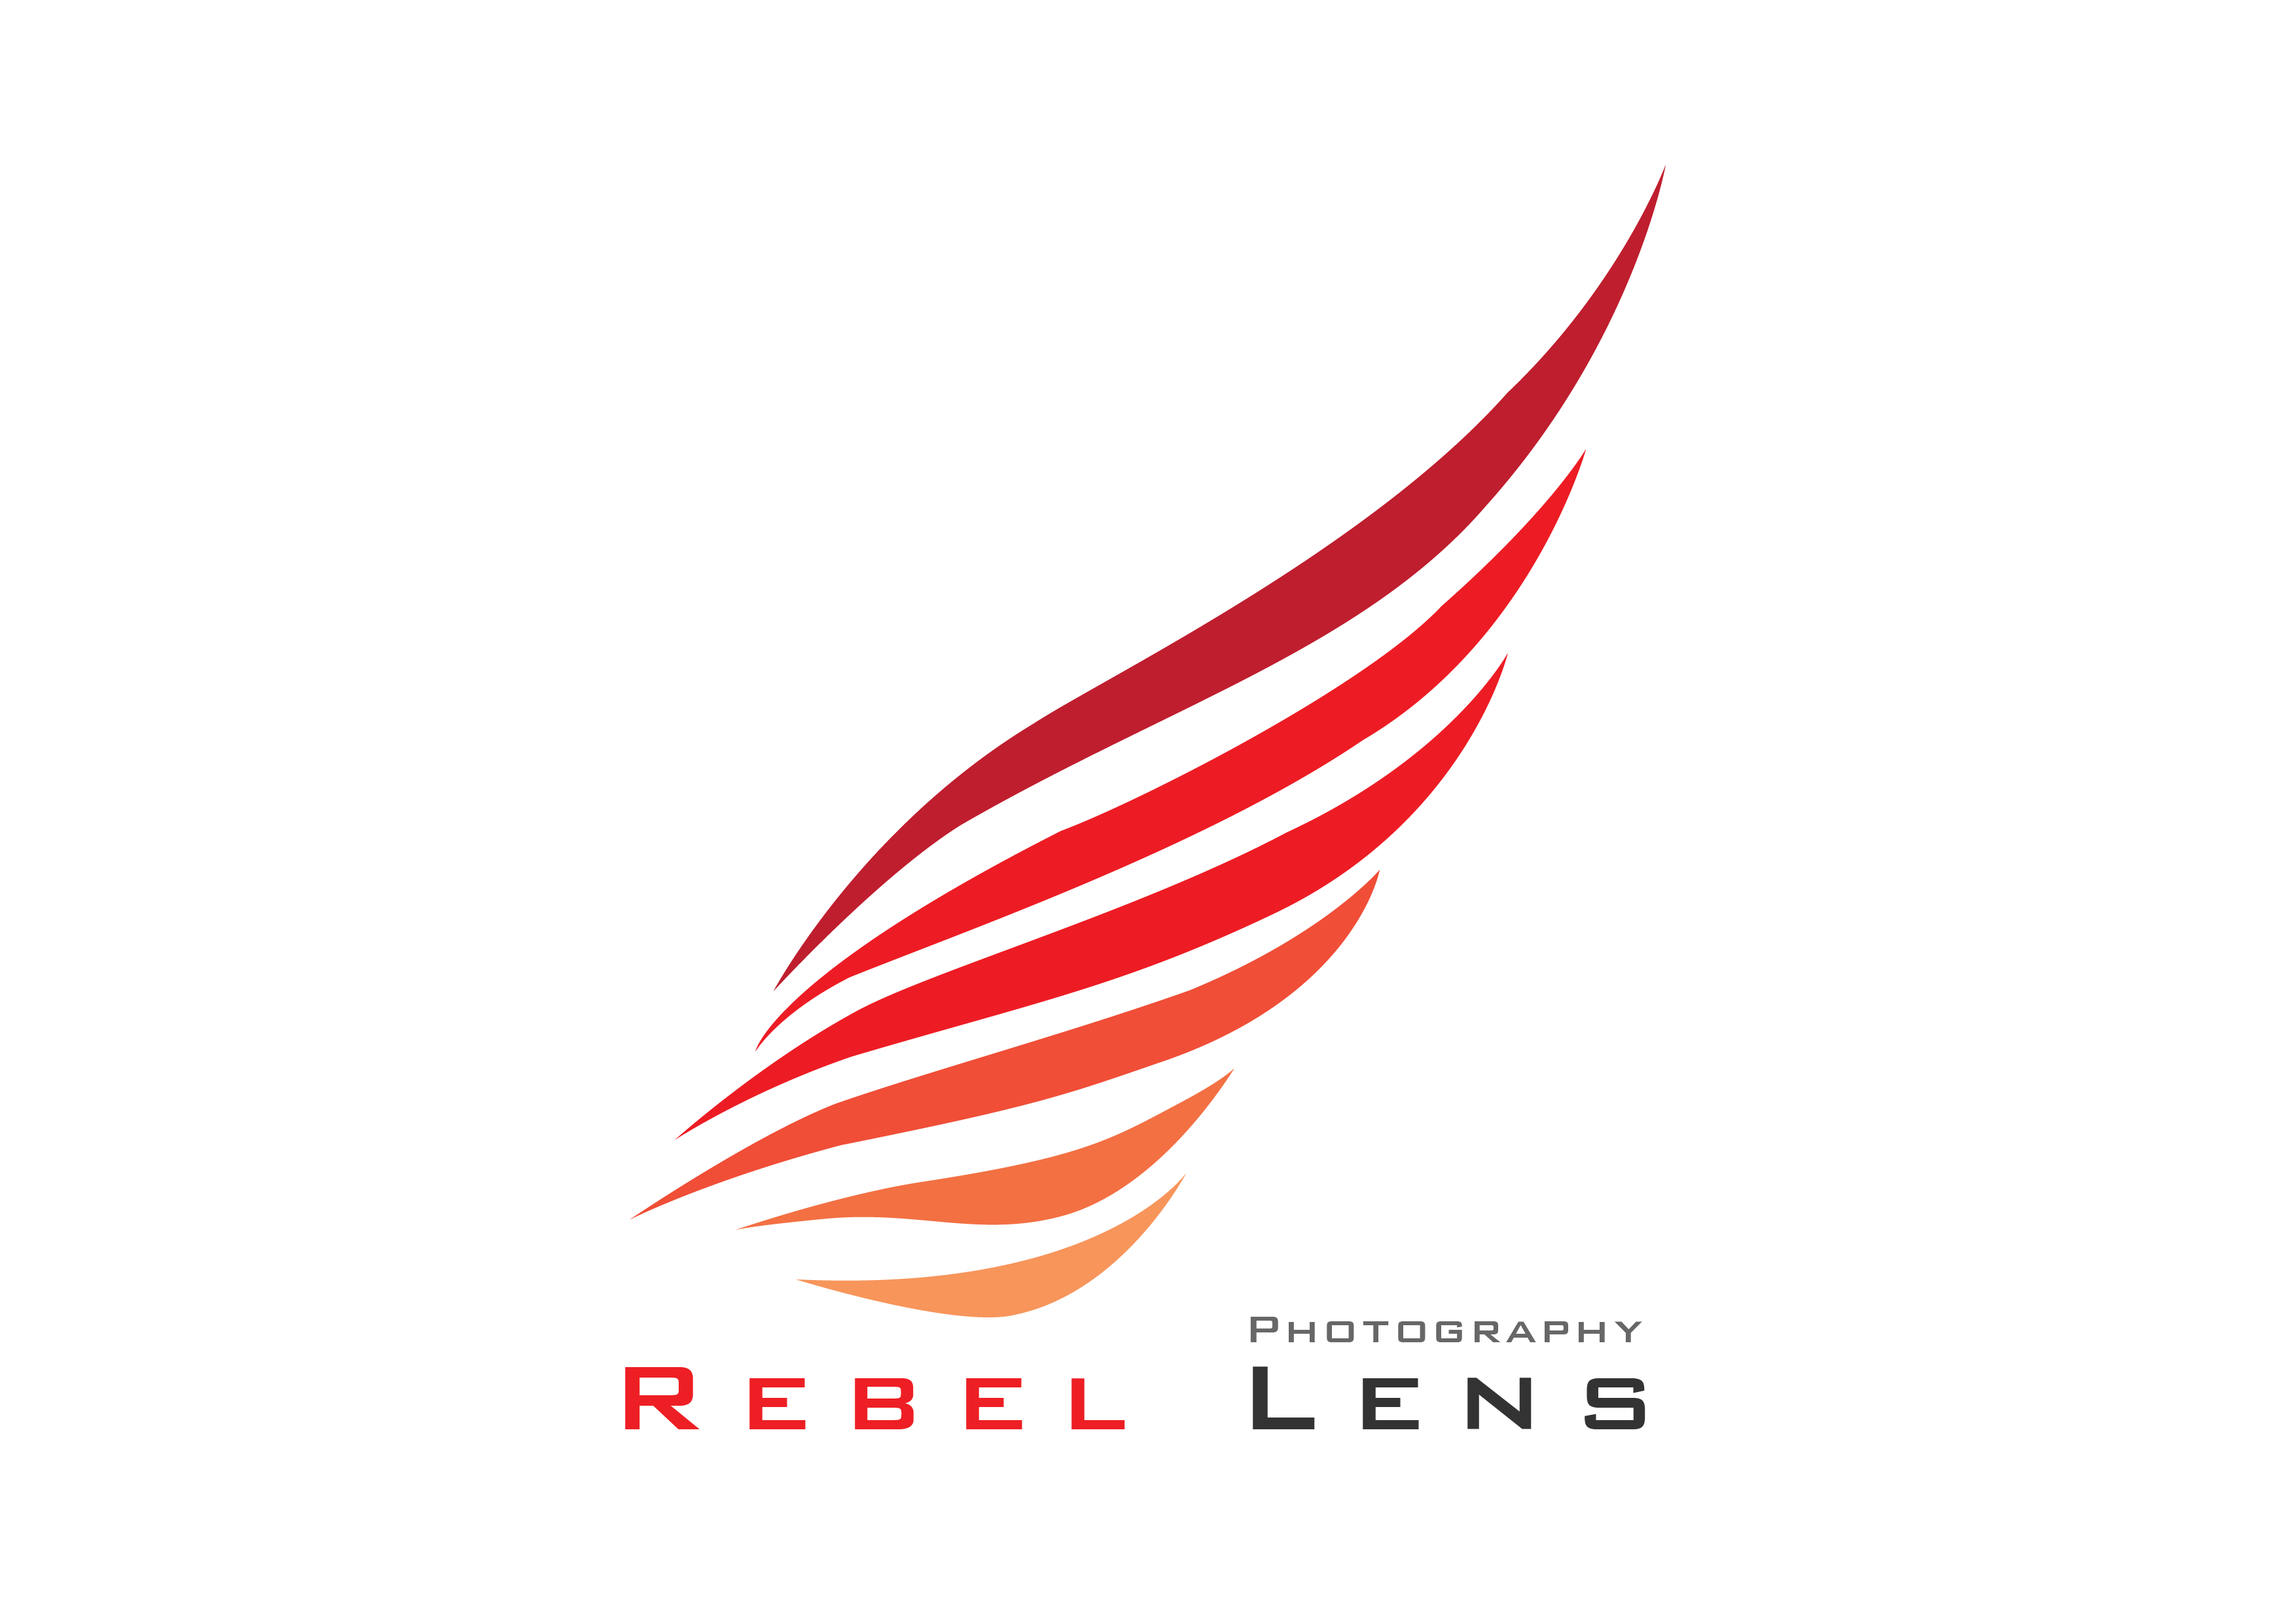 Rebel Lens Photography Logo, Icon and Brand Identity Design.